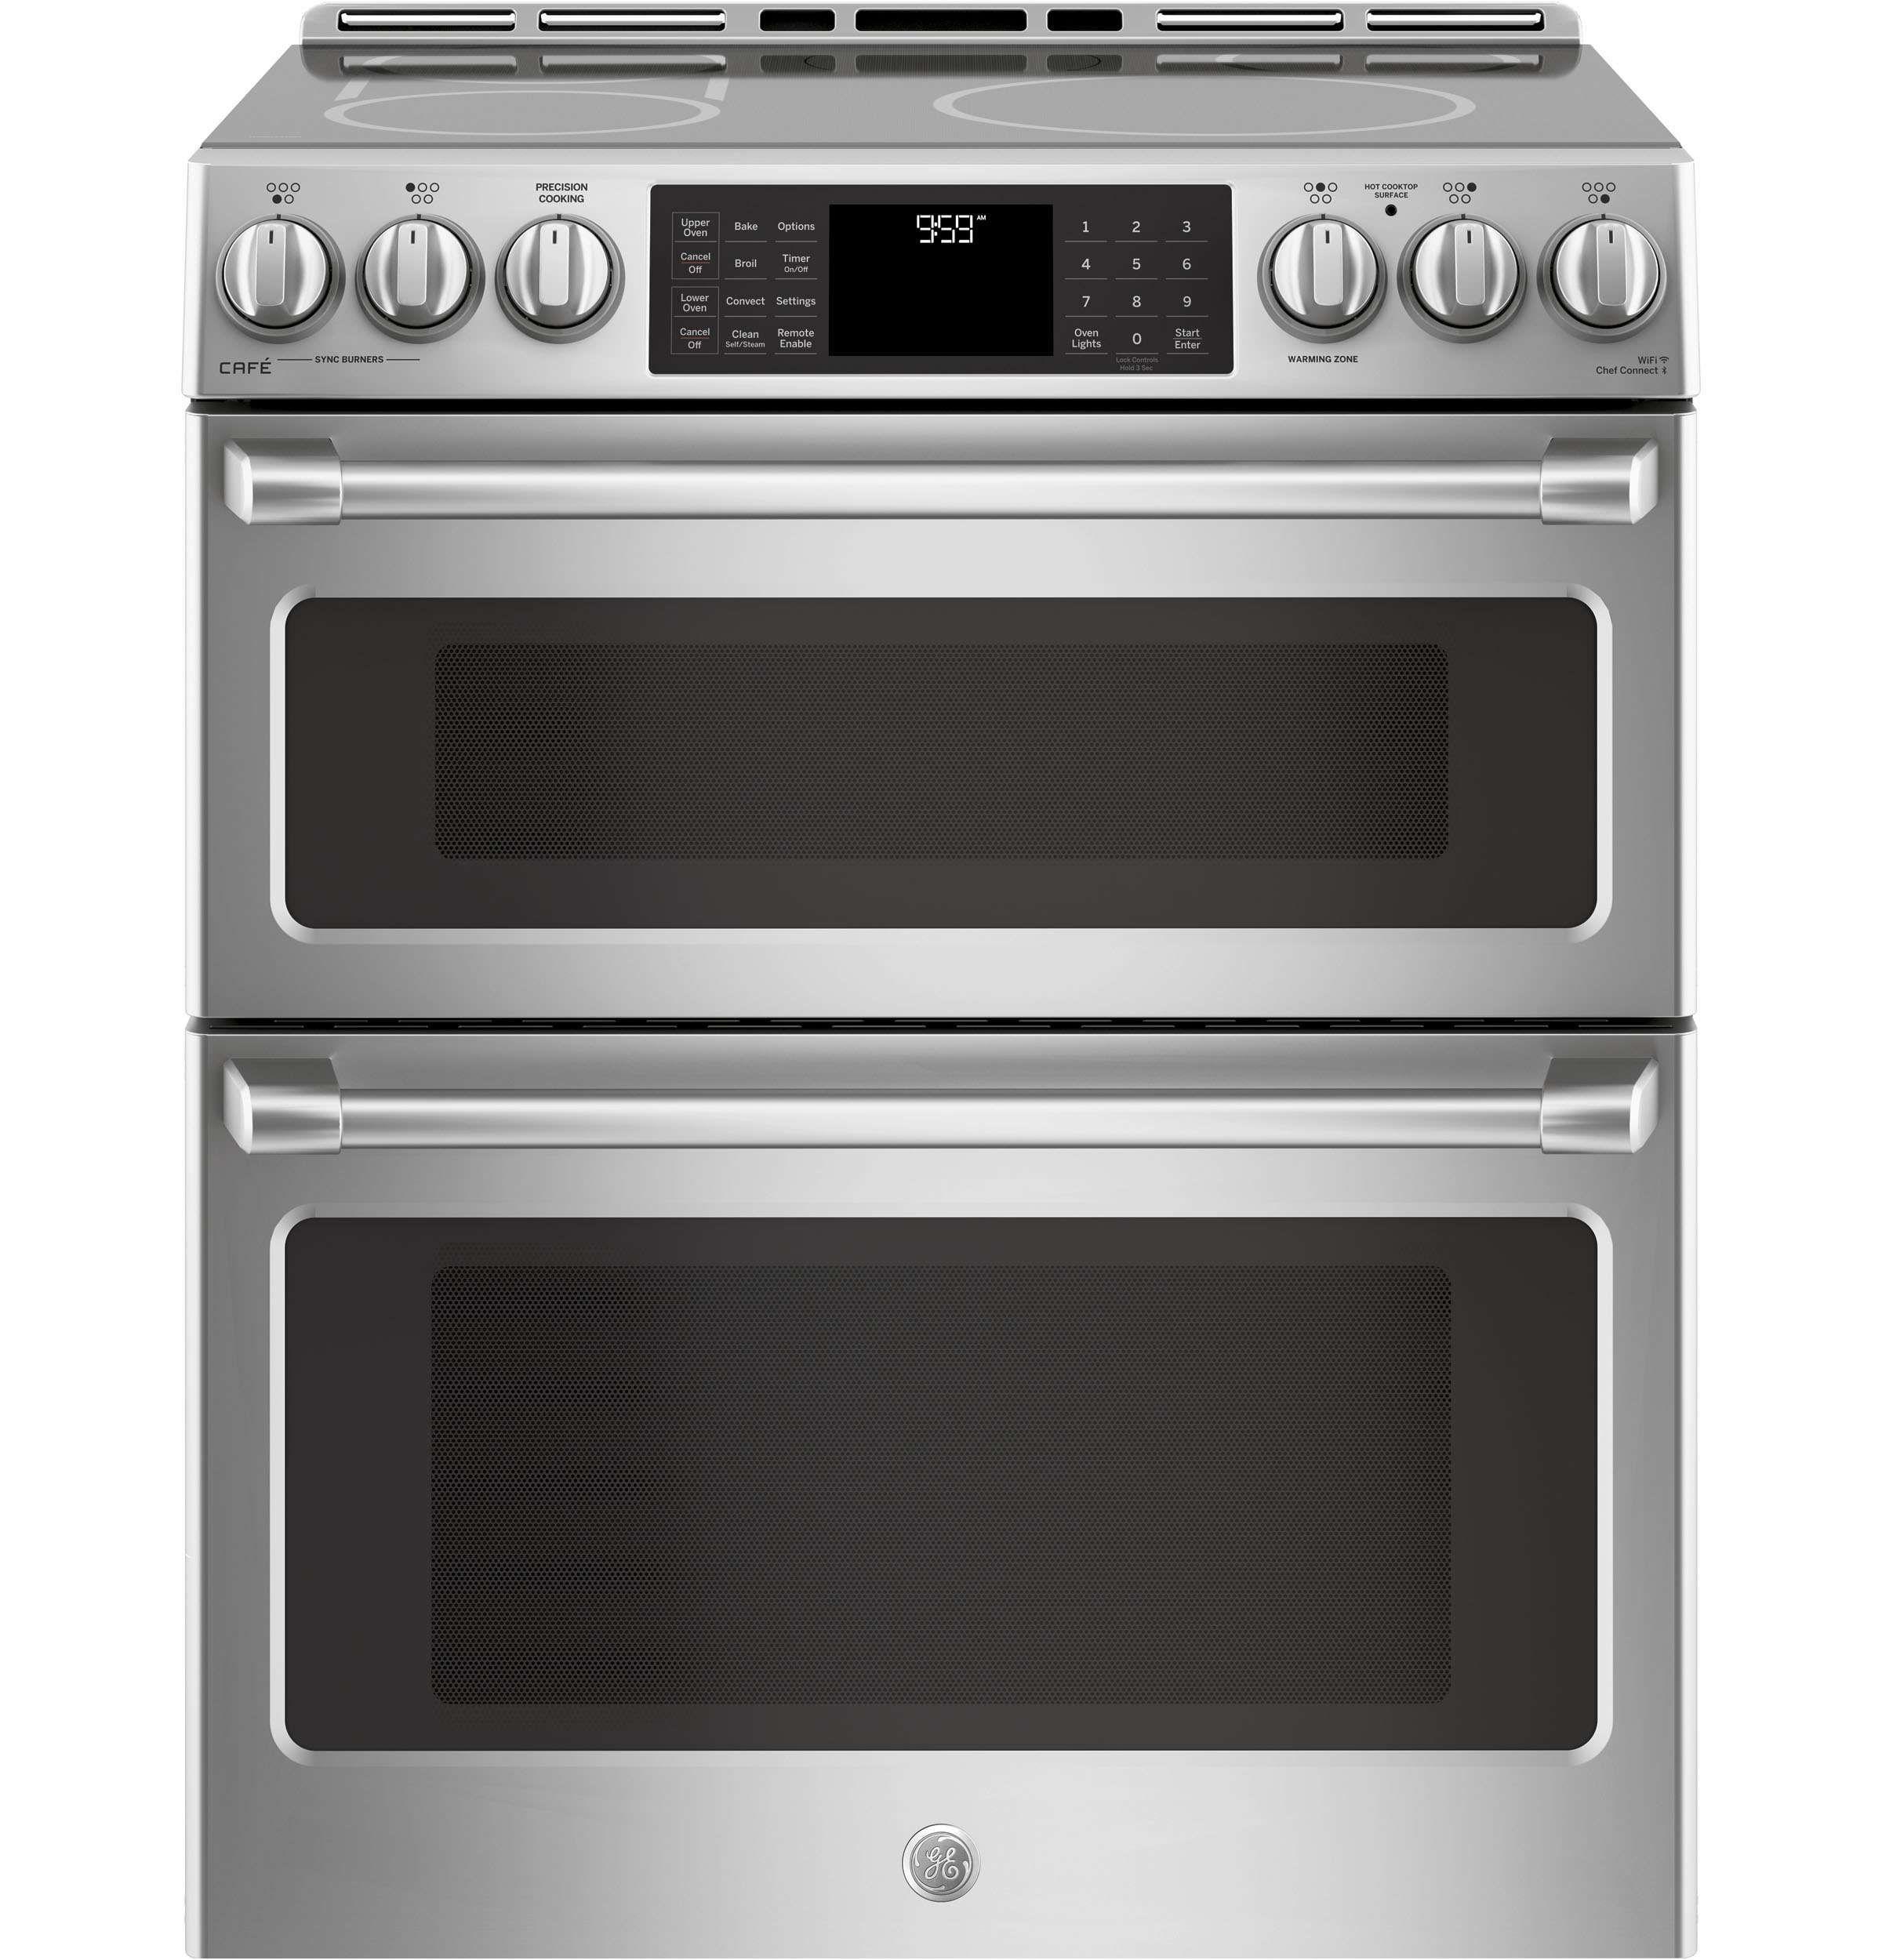 Lowest Price On Ge Chs995selss Cafe 30 Stainless Steel Slide In Induction Double Oven Range Convection Today